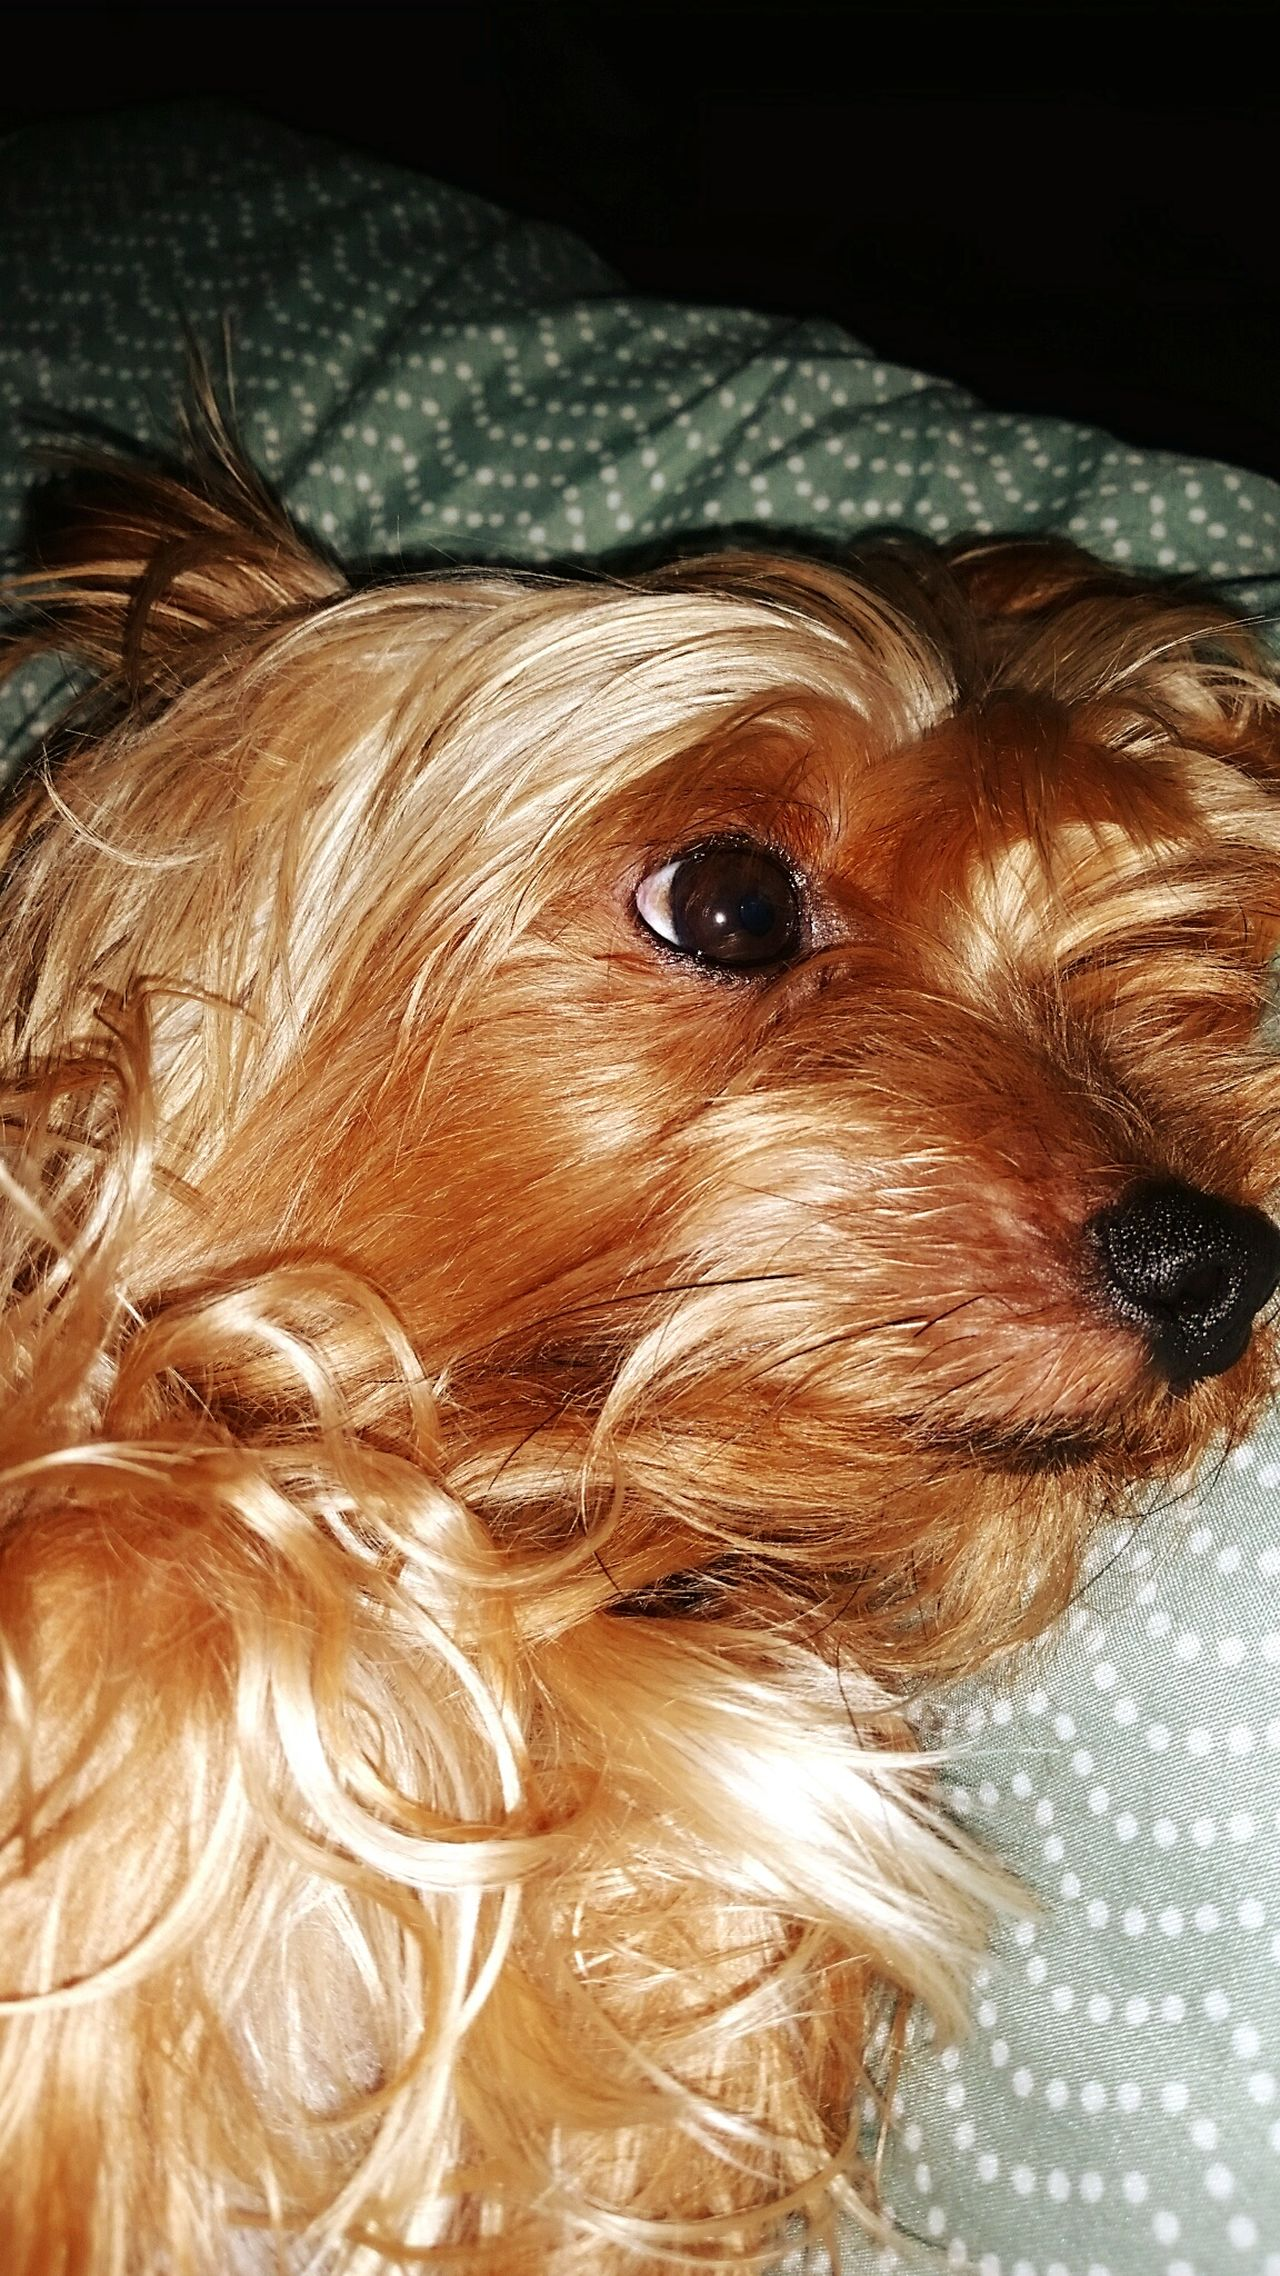 YorkieBestShots Cute Doggy Lookatthatface My Dogs Are Cooler Than Your Kids